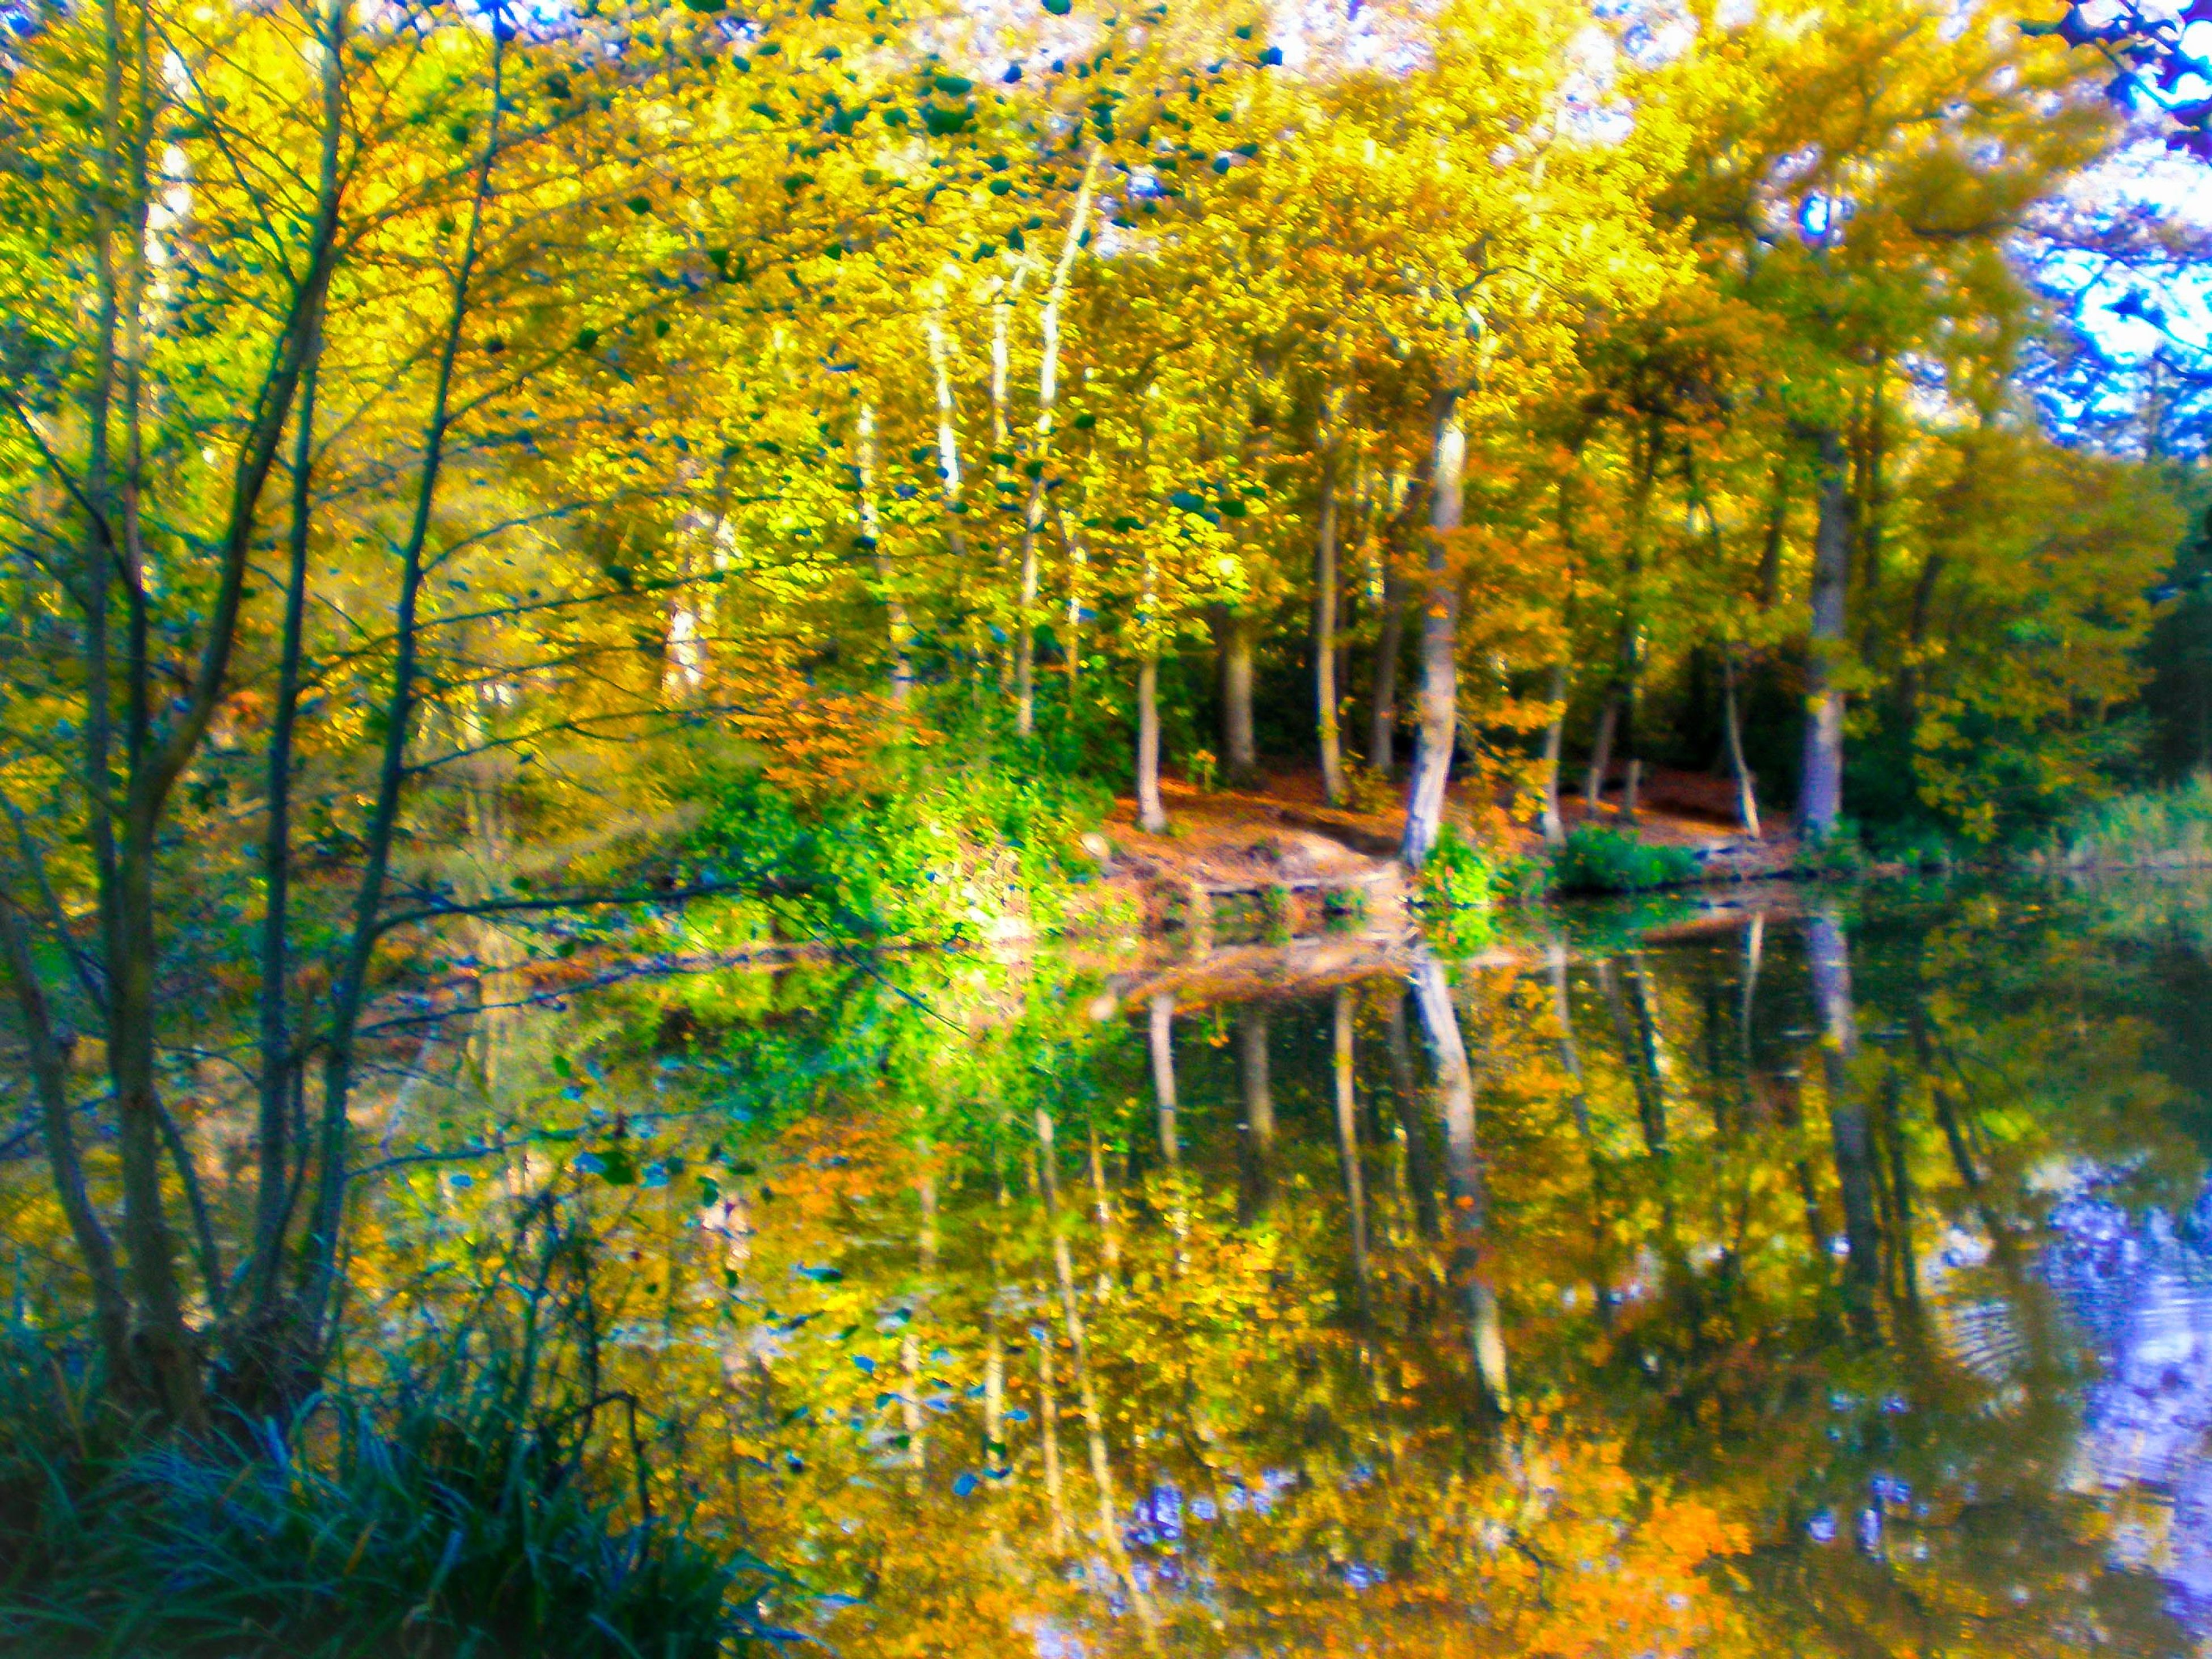 tree, water, tranquility, tranquil scene, nature, beauty in nature, forest, growth, lake, scenics, reflection, green color, branch, idyllic, non-urban scene, day, nautical vessel, outdoors, boat, autumn